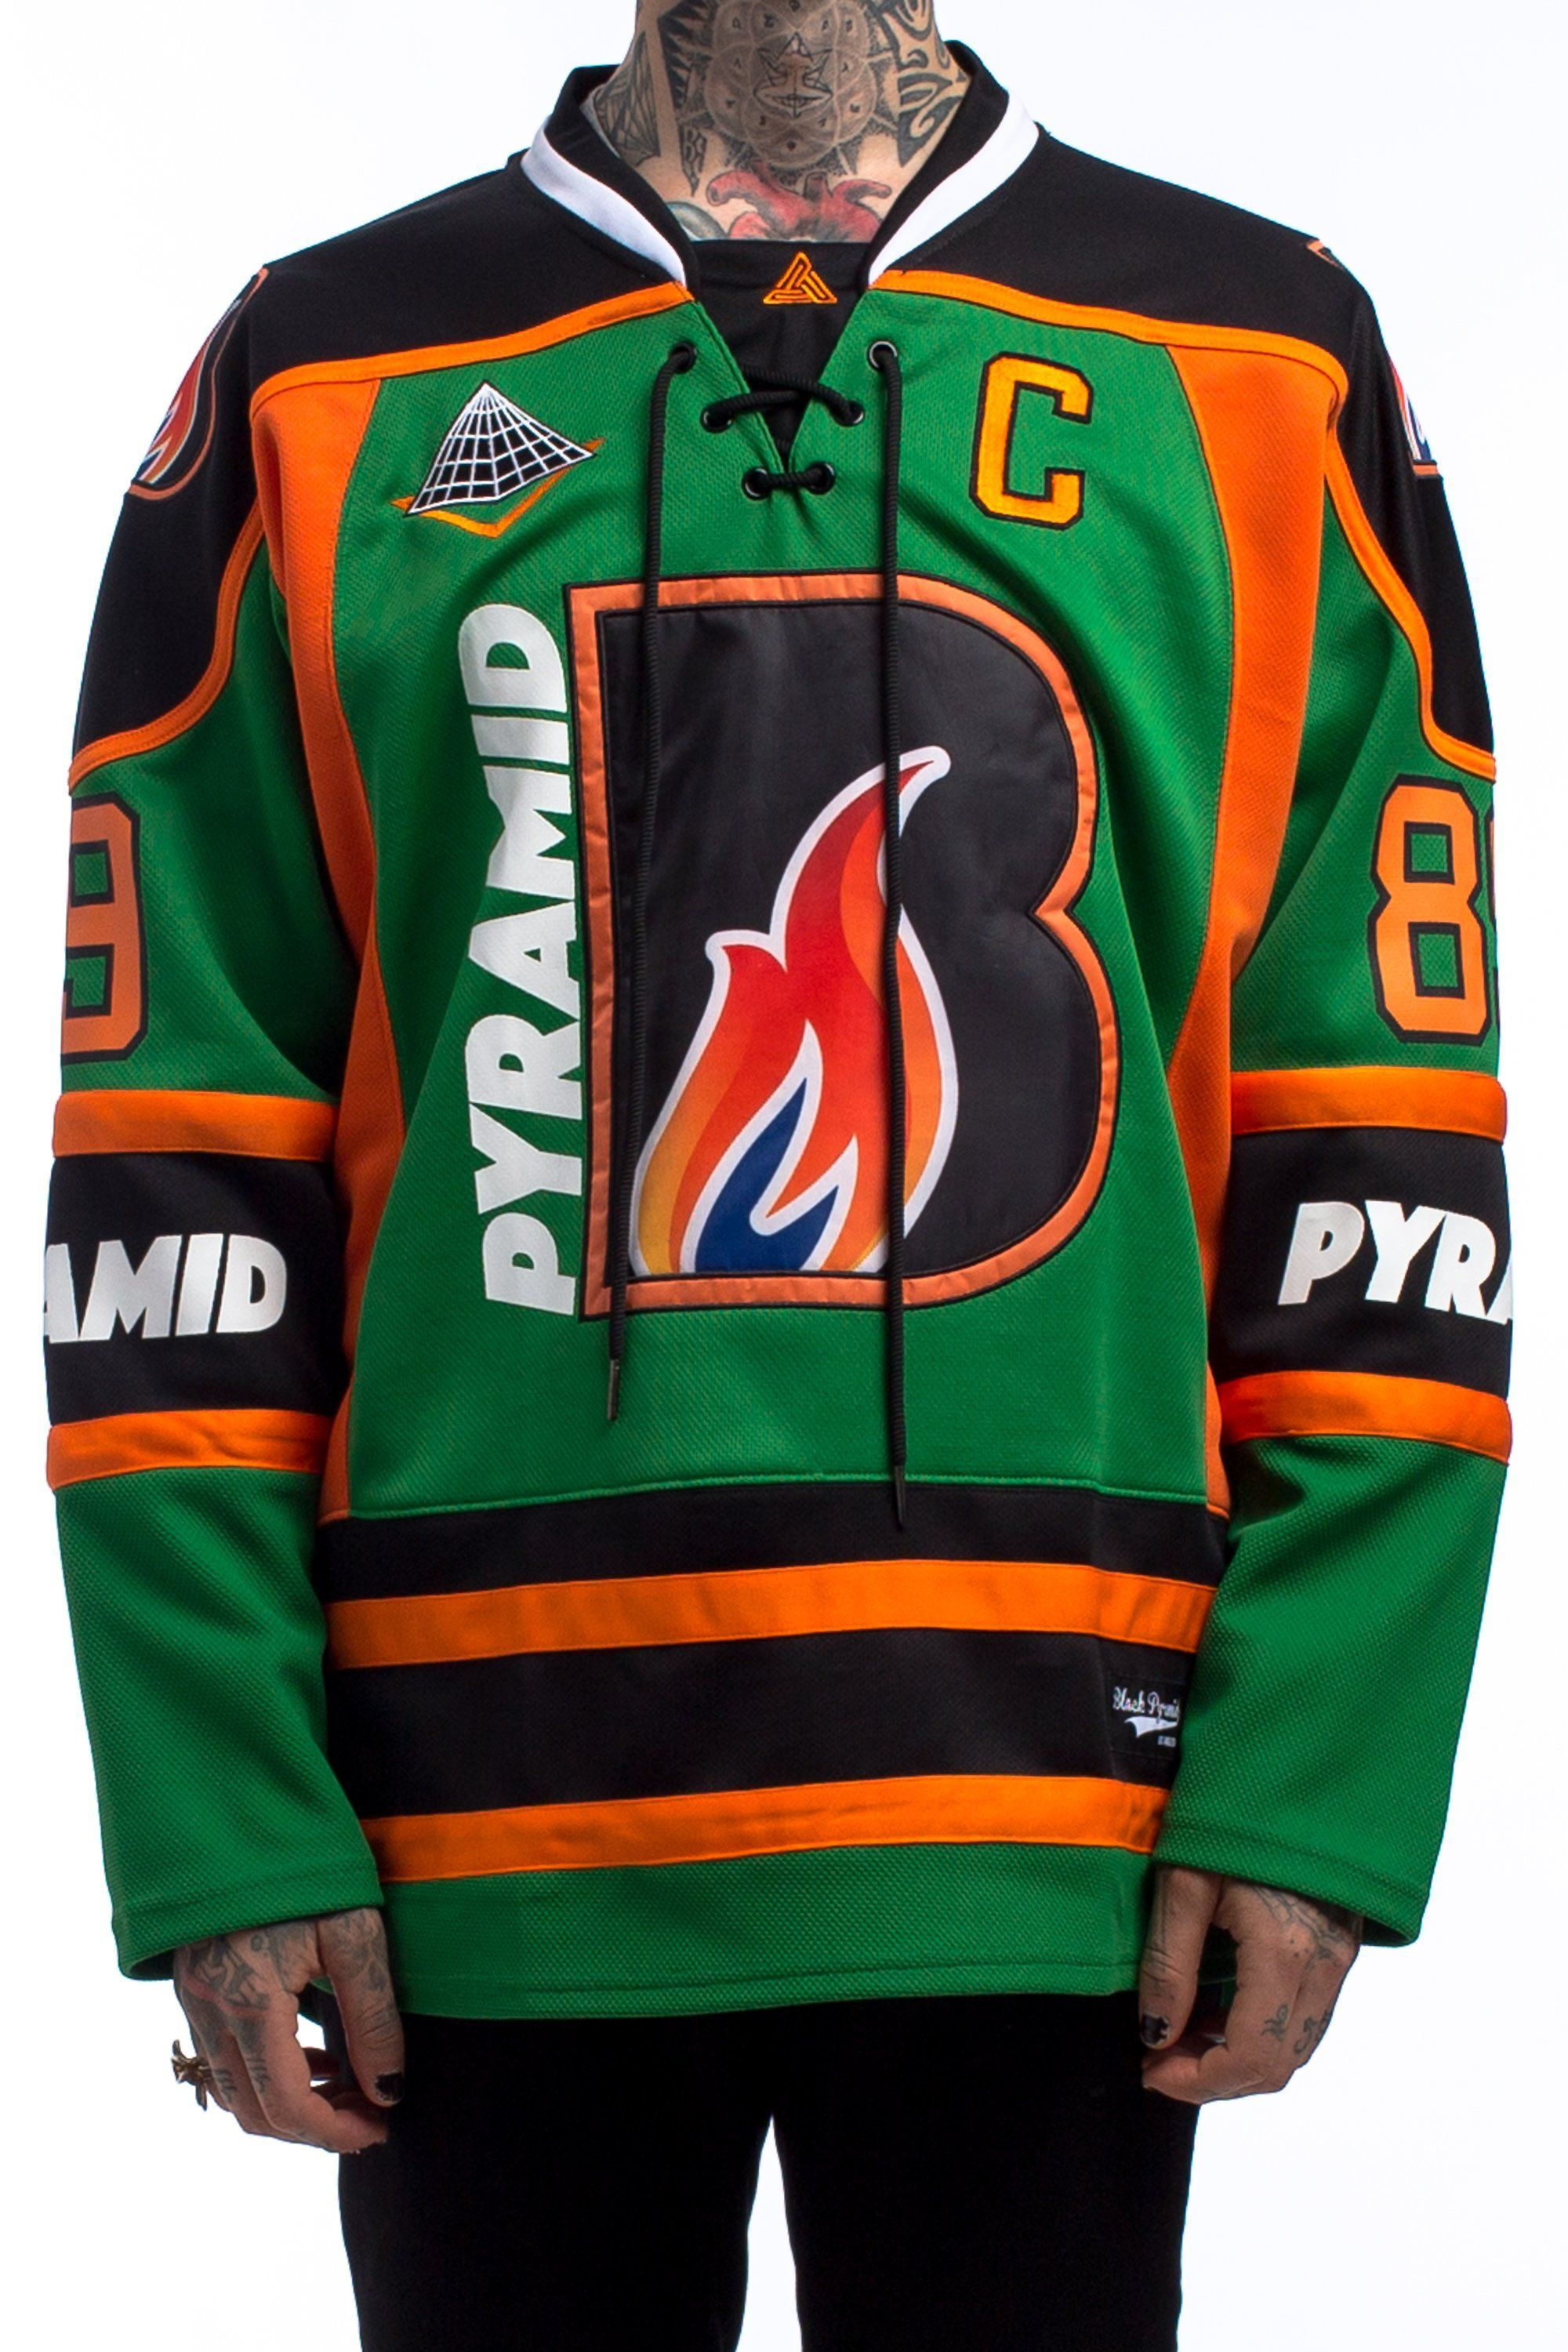 BP Flame Hockey Jersey from Black Pyramid Store | Fashion ...